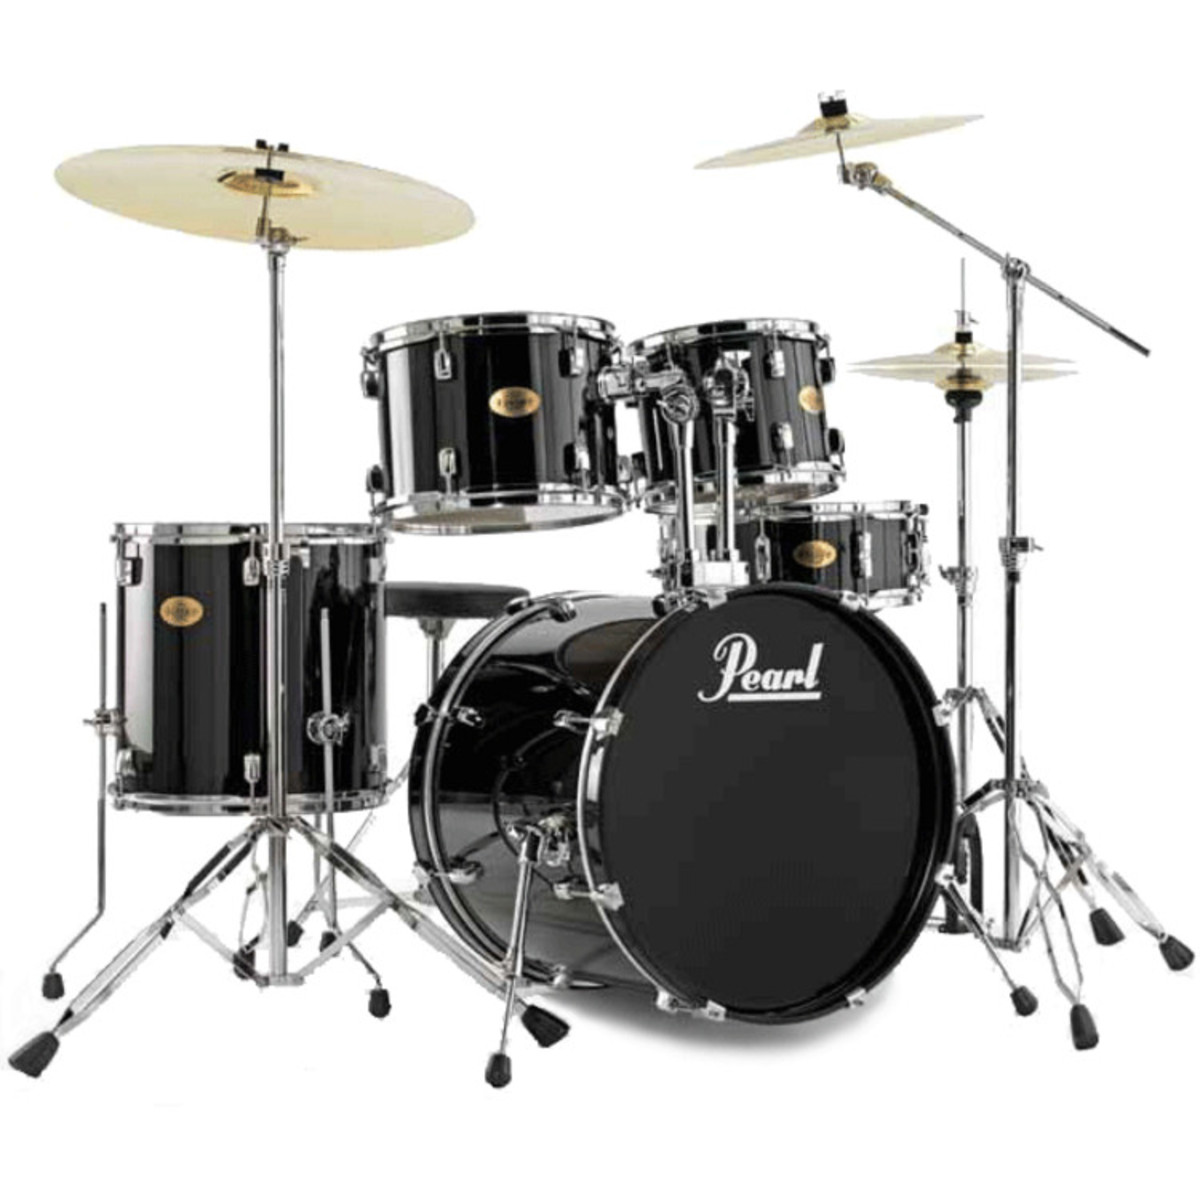 Disc Pearl Target Drum Kit Limited Edition Jet Black At